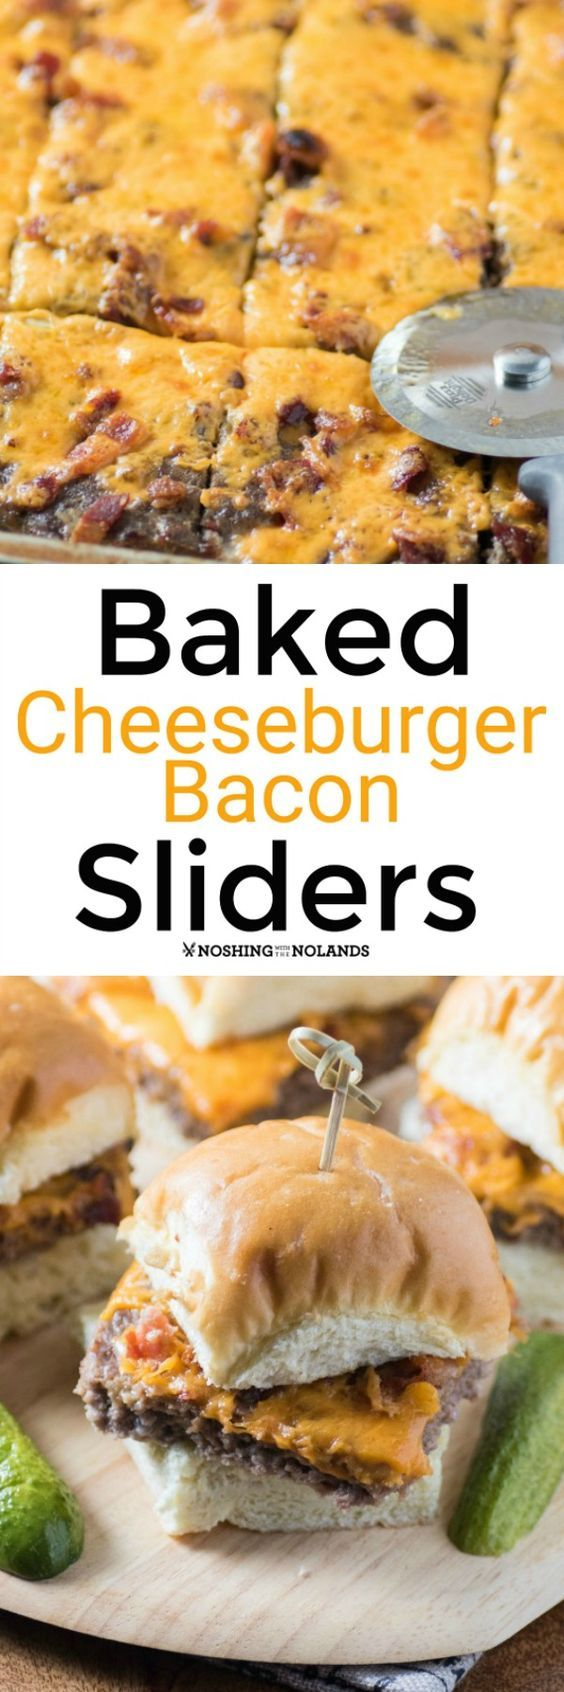 Baked Cheeseburger Bacon Sliders by Noshing With The Nolands will satisfy a hungry crowd be it for game day or a casual get together!